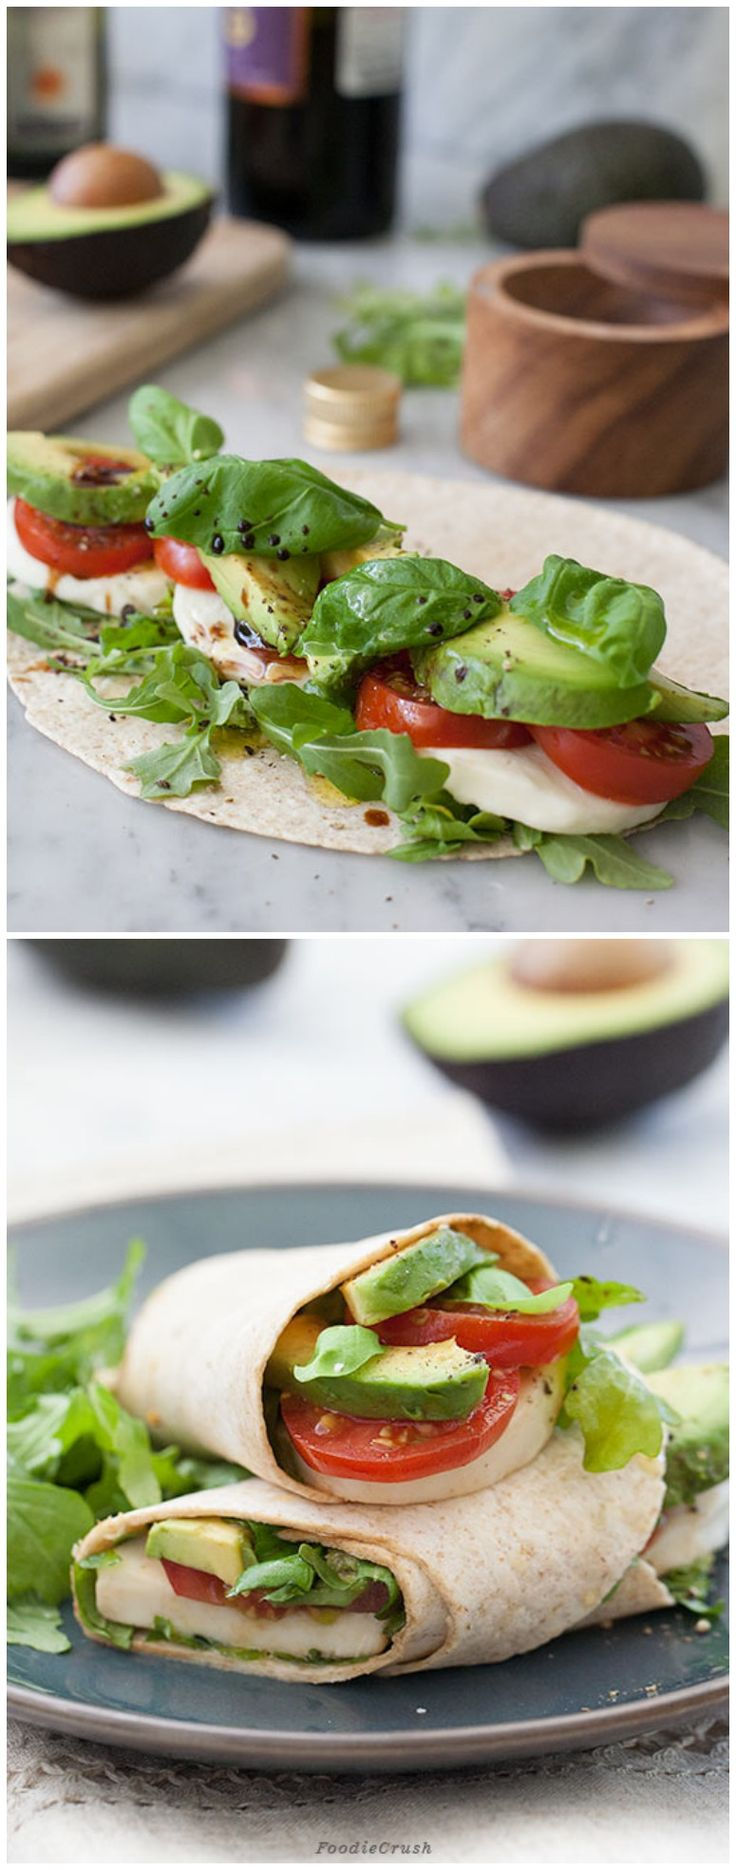 Avocado Caprese Wrap from Foodie Crush - though I'd slenderize this a bit with smaller portions of cheese and avocado, more basil and tomato.